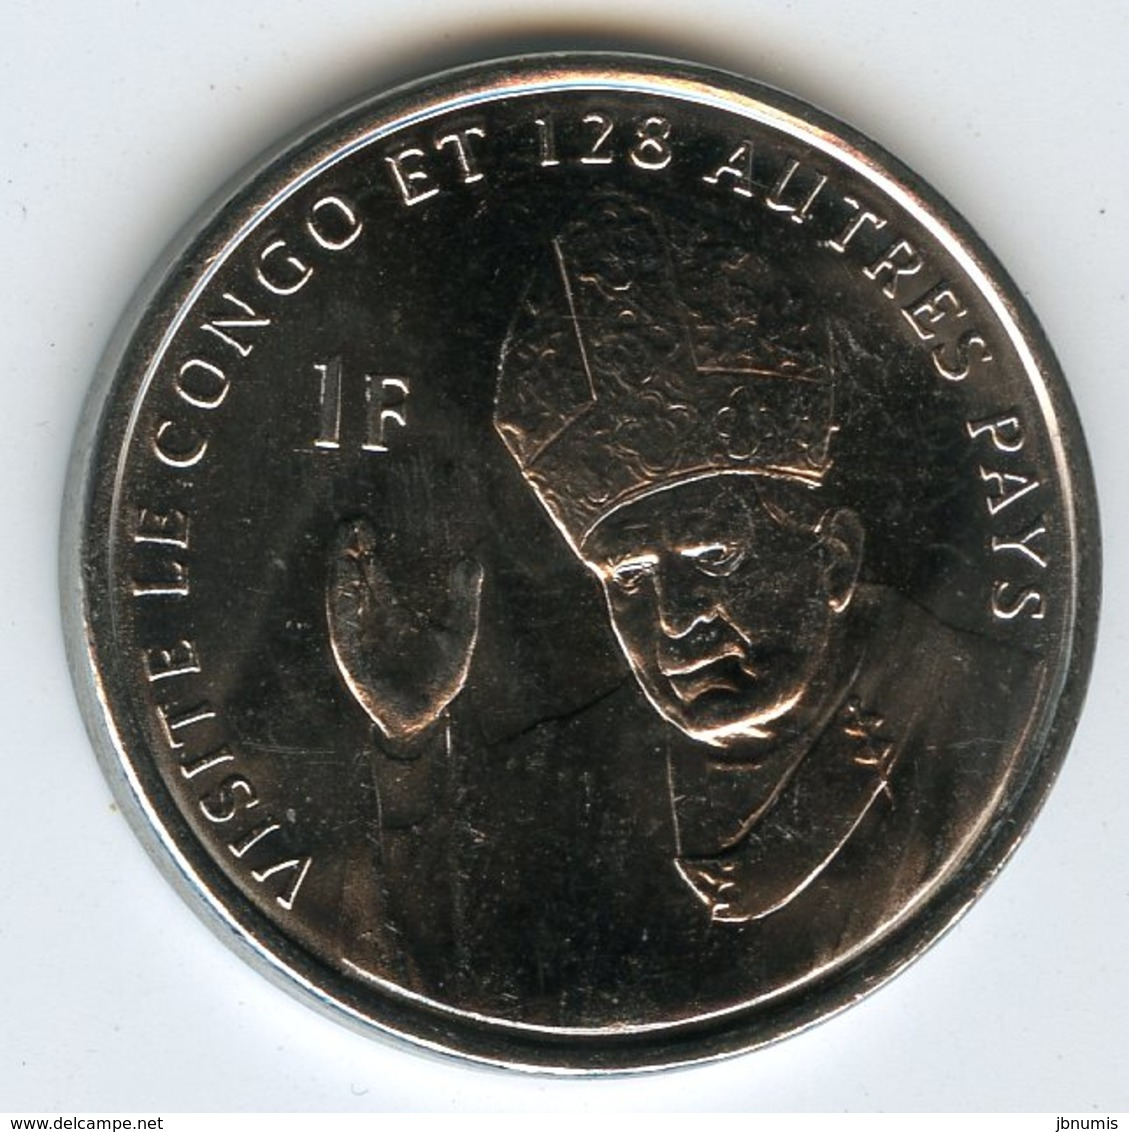 Pope John Paul II as newly elected pope in 1978 2004 Congo 1 Franc Unc